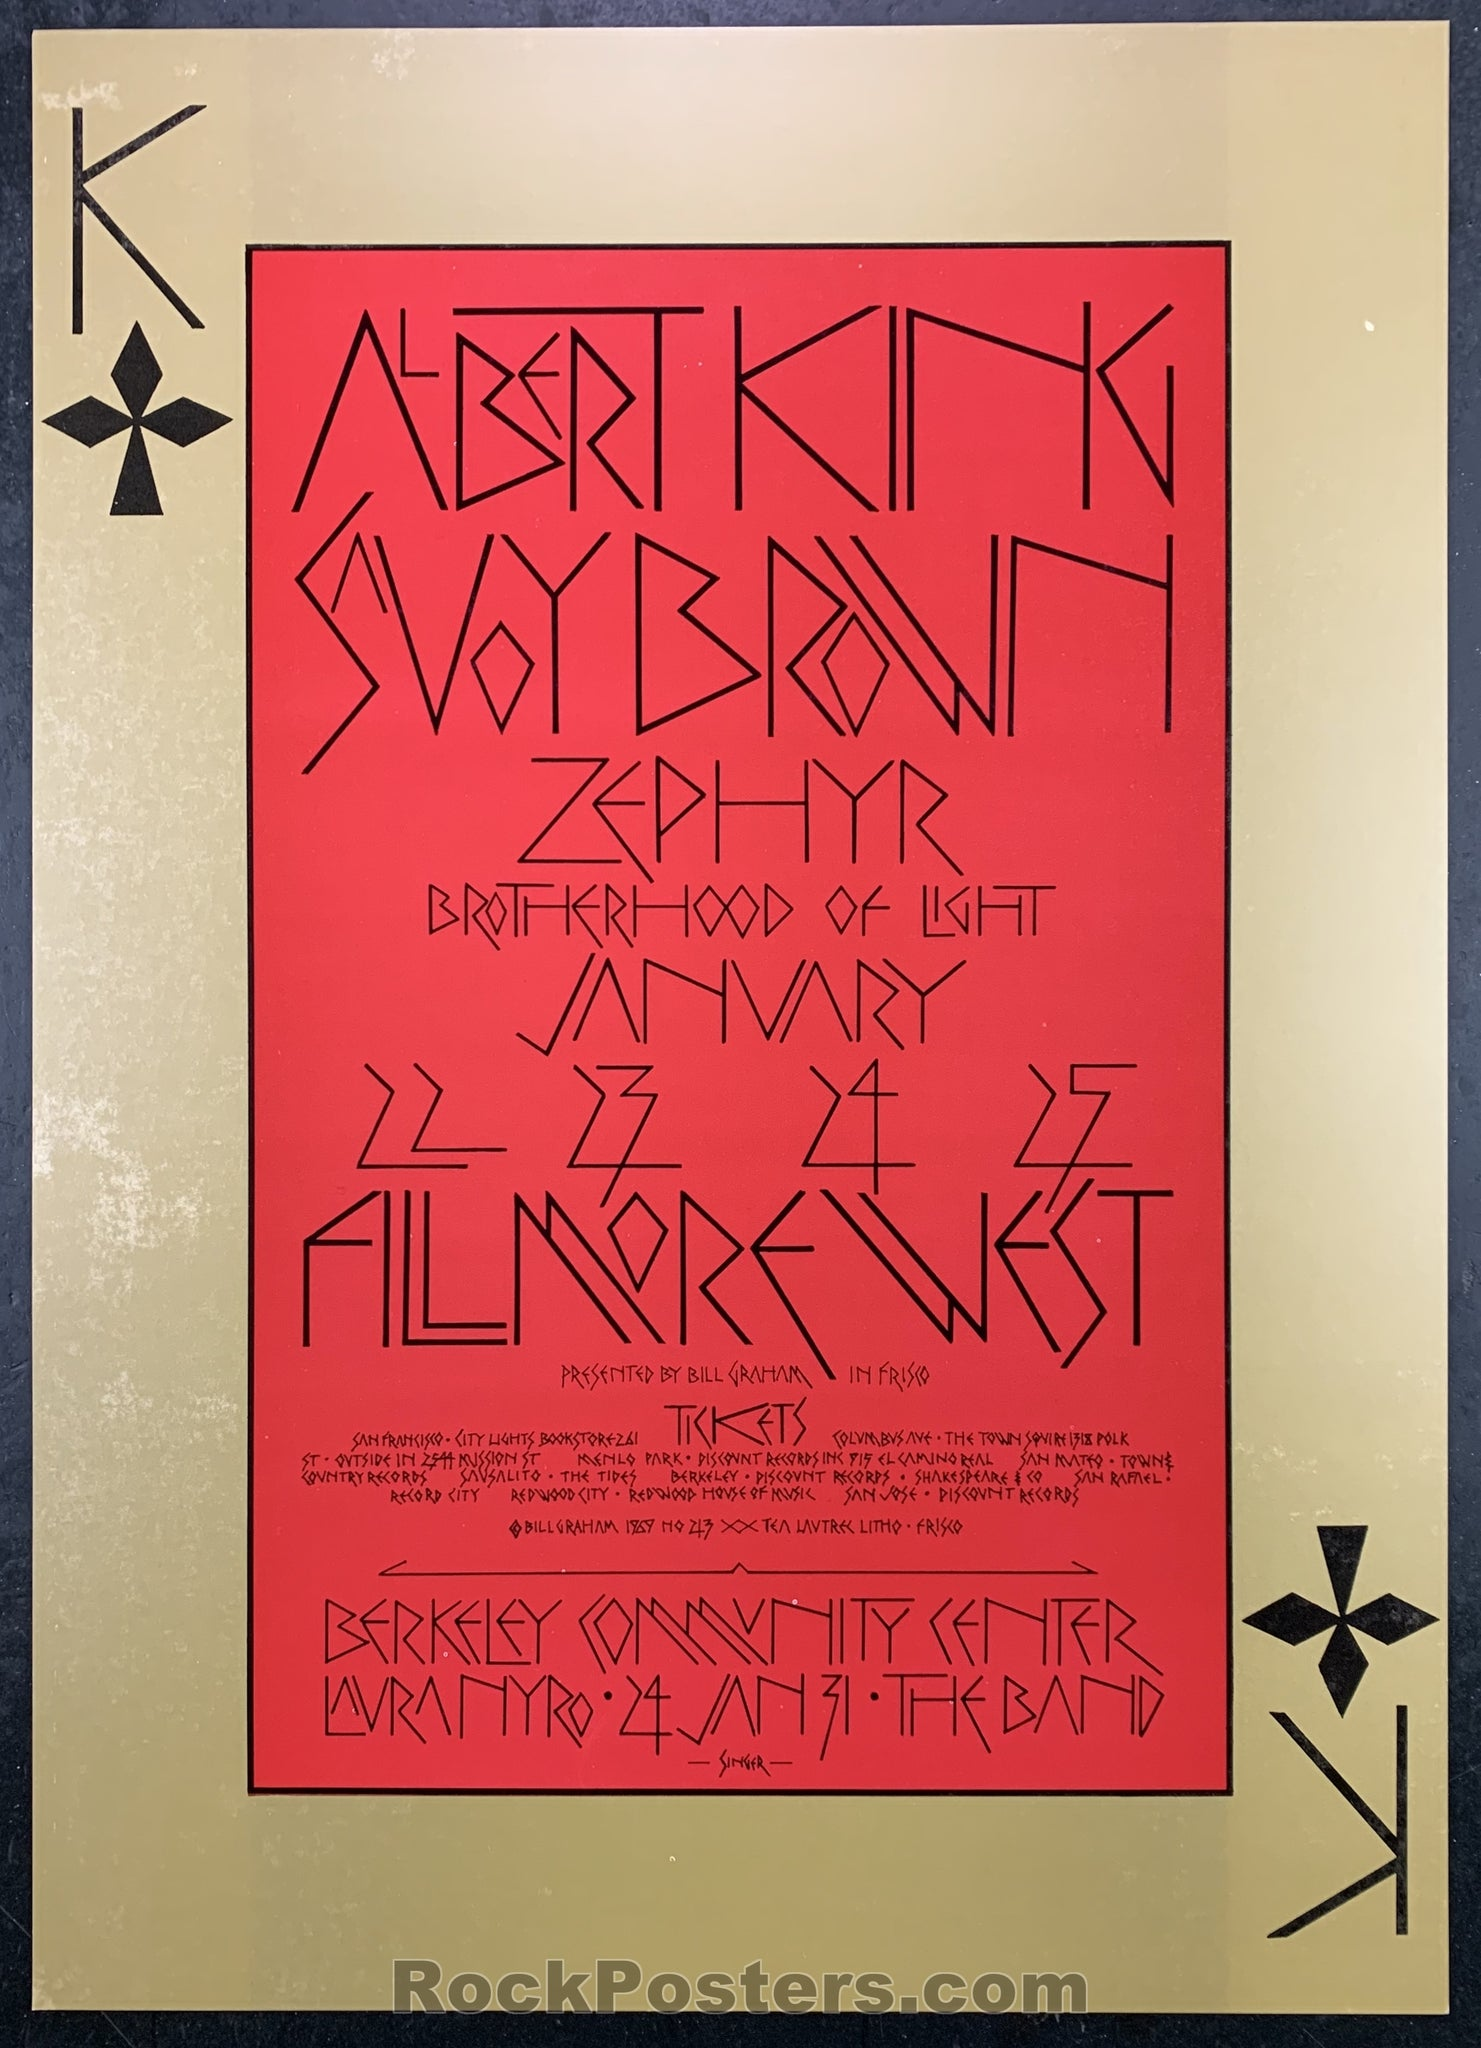 BG-213 - Albert King Poster - Fillmore West- Condition - Near Mint